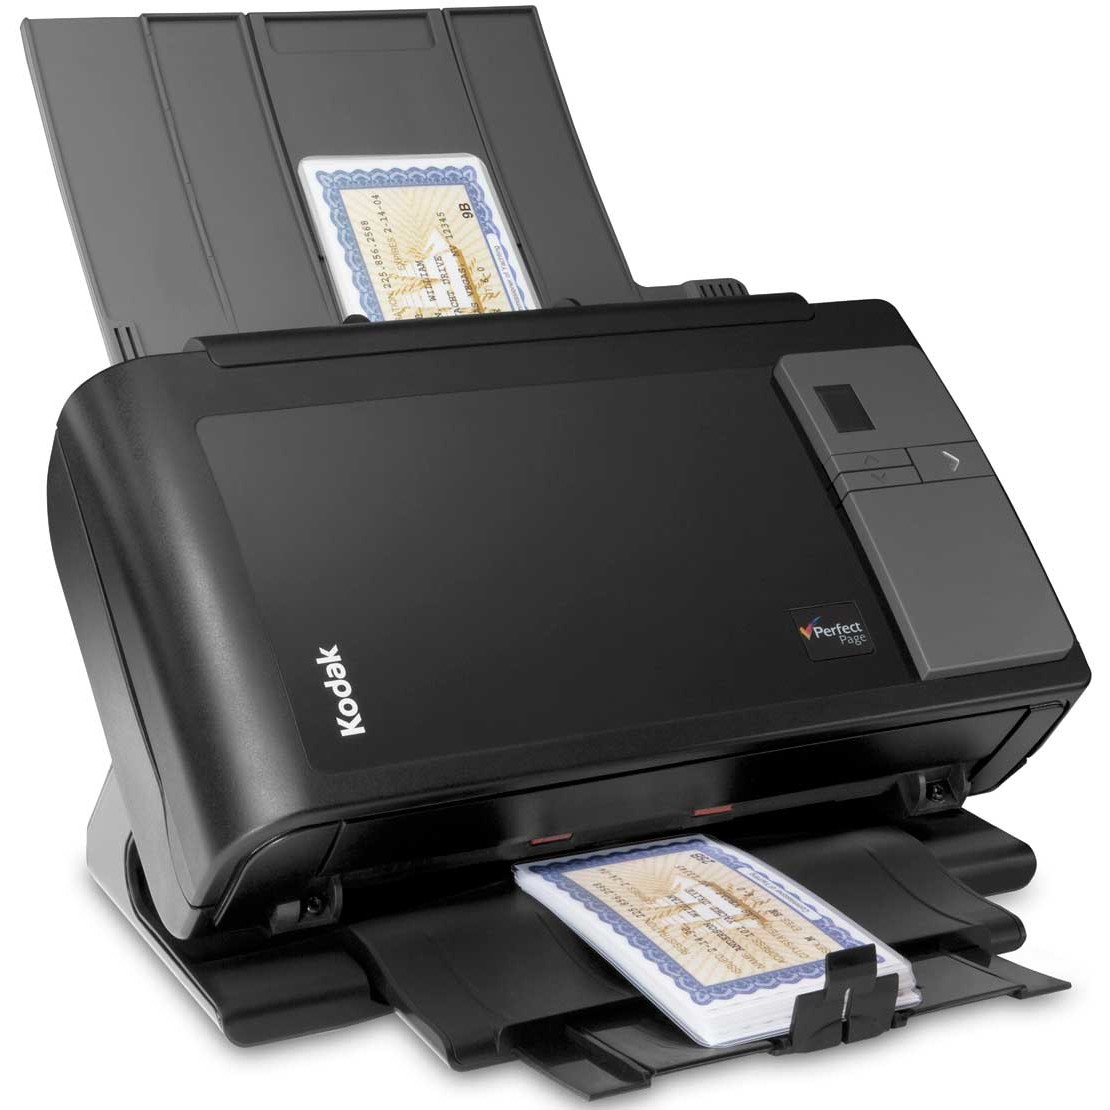 Scaner i2620, USB 2.0, 60 ppm, 600 dpi